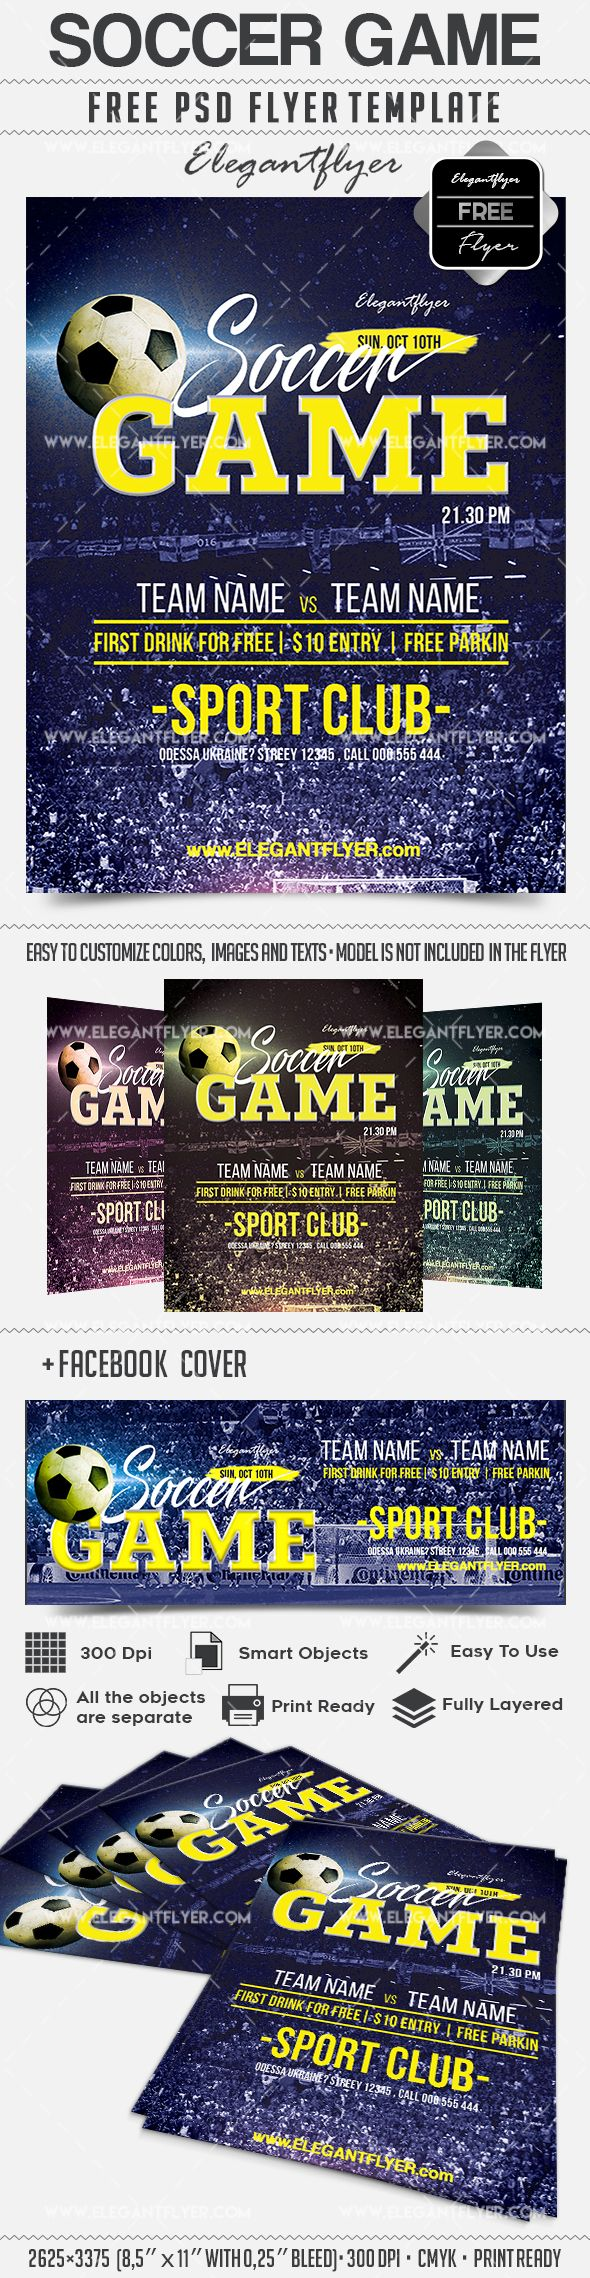 9 best world cup poster images on pinterest sports flyer flyer template and print templates. Black Bedroom Furniture Sets. Home Design Ideas